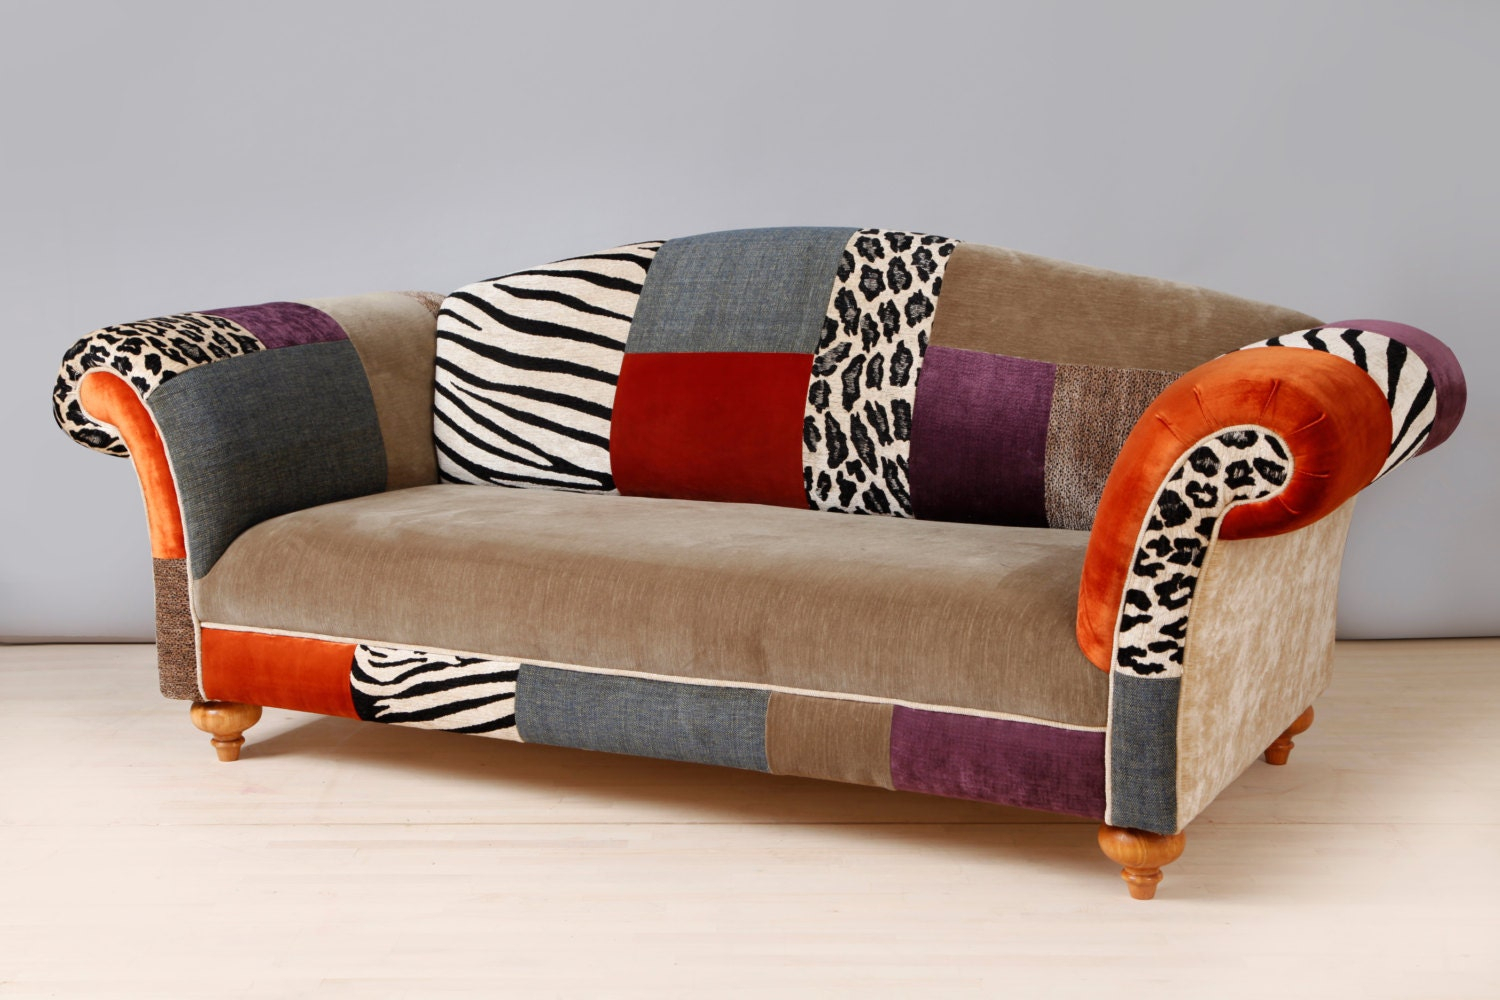 Colorful Patchwork Sofanamedesignstudio On Etsy Pertaining To Colorful Sofas And Chairs (View 1 of 15)